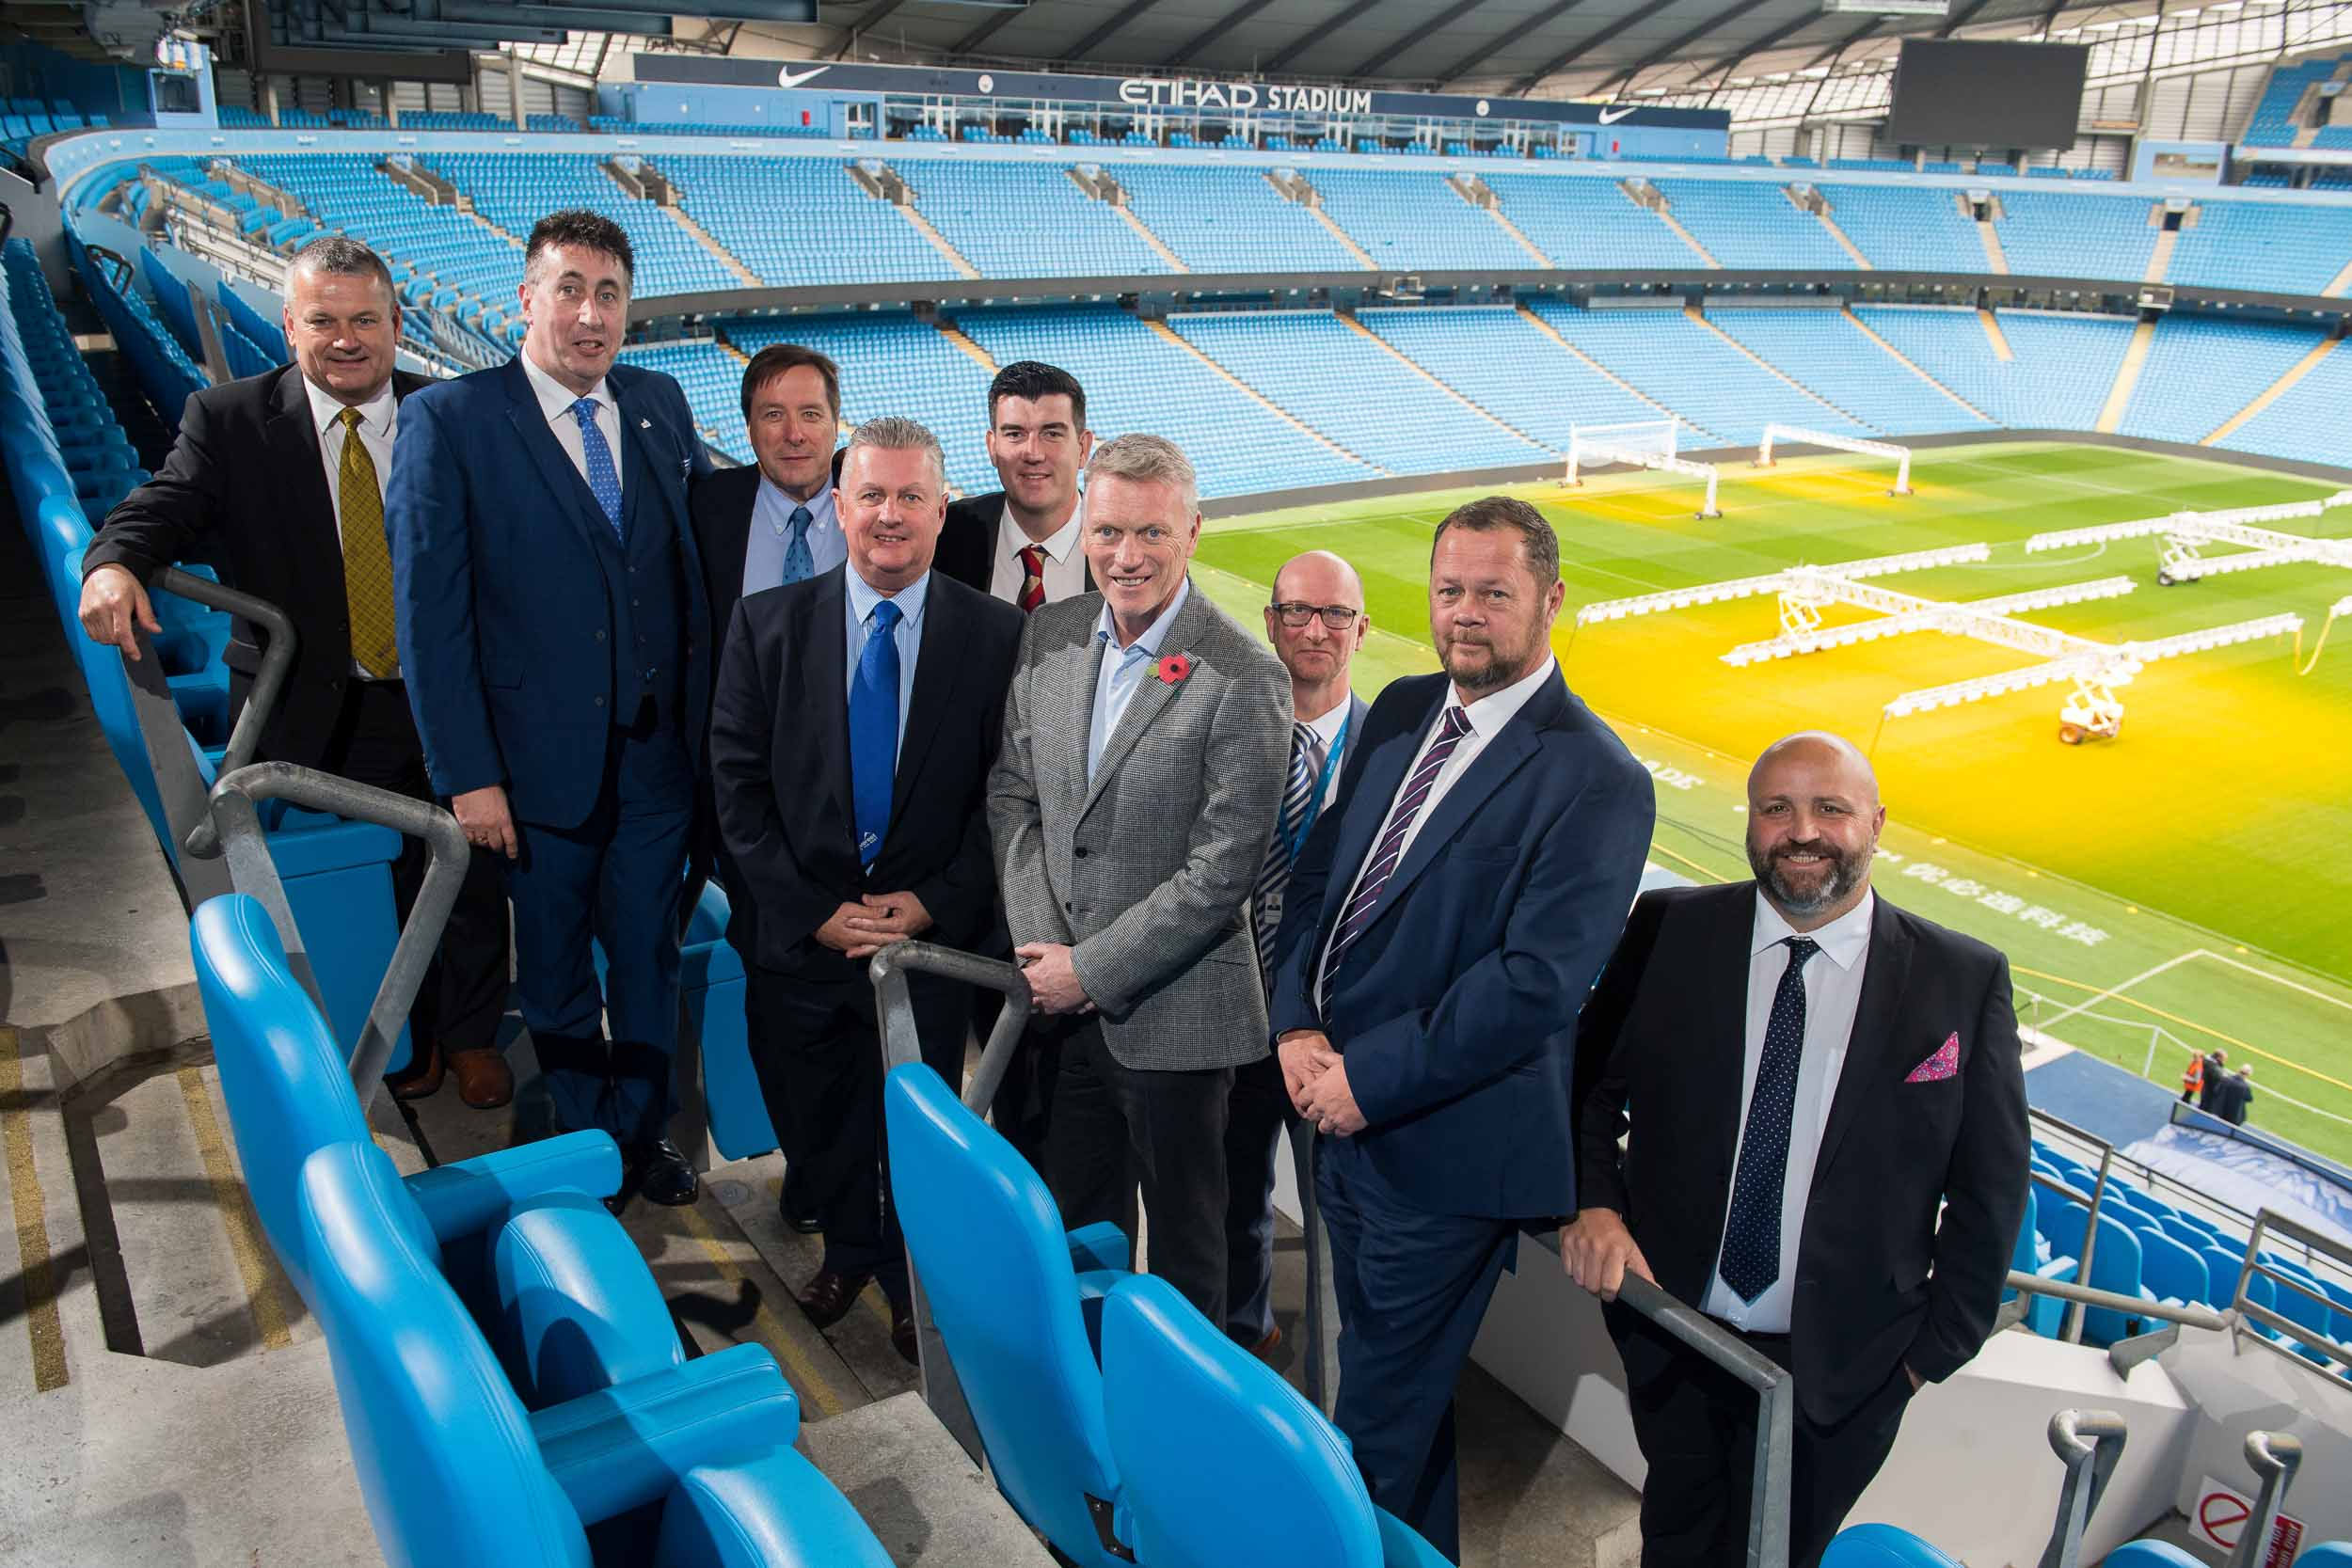 Football manager meets business leaders at football stadium. Moyes makes return to Manchester City.